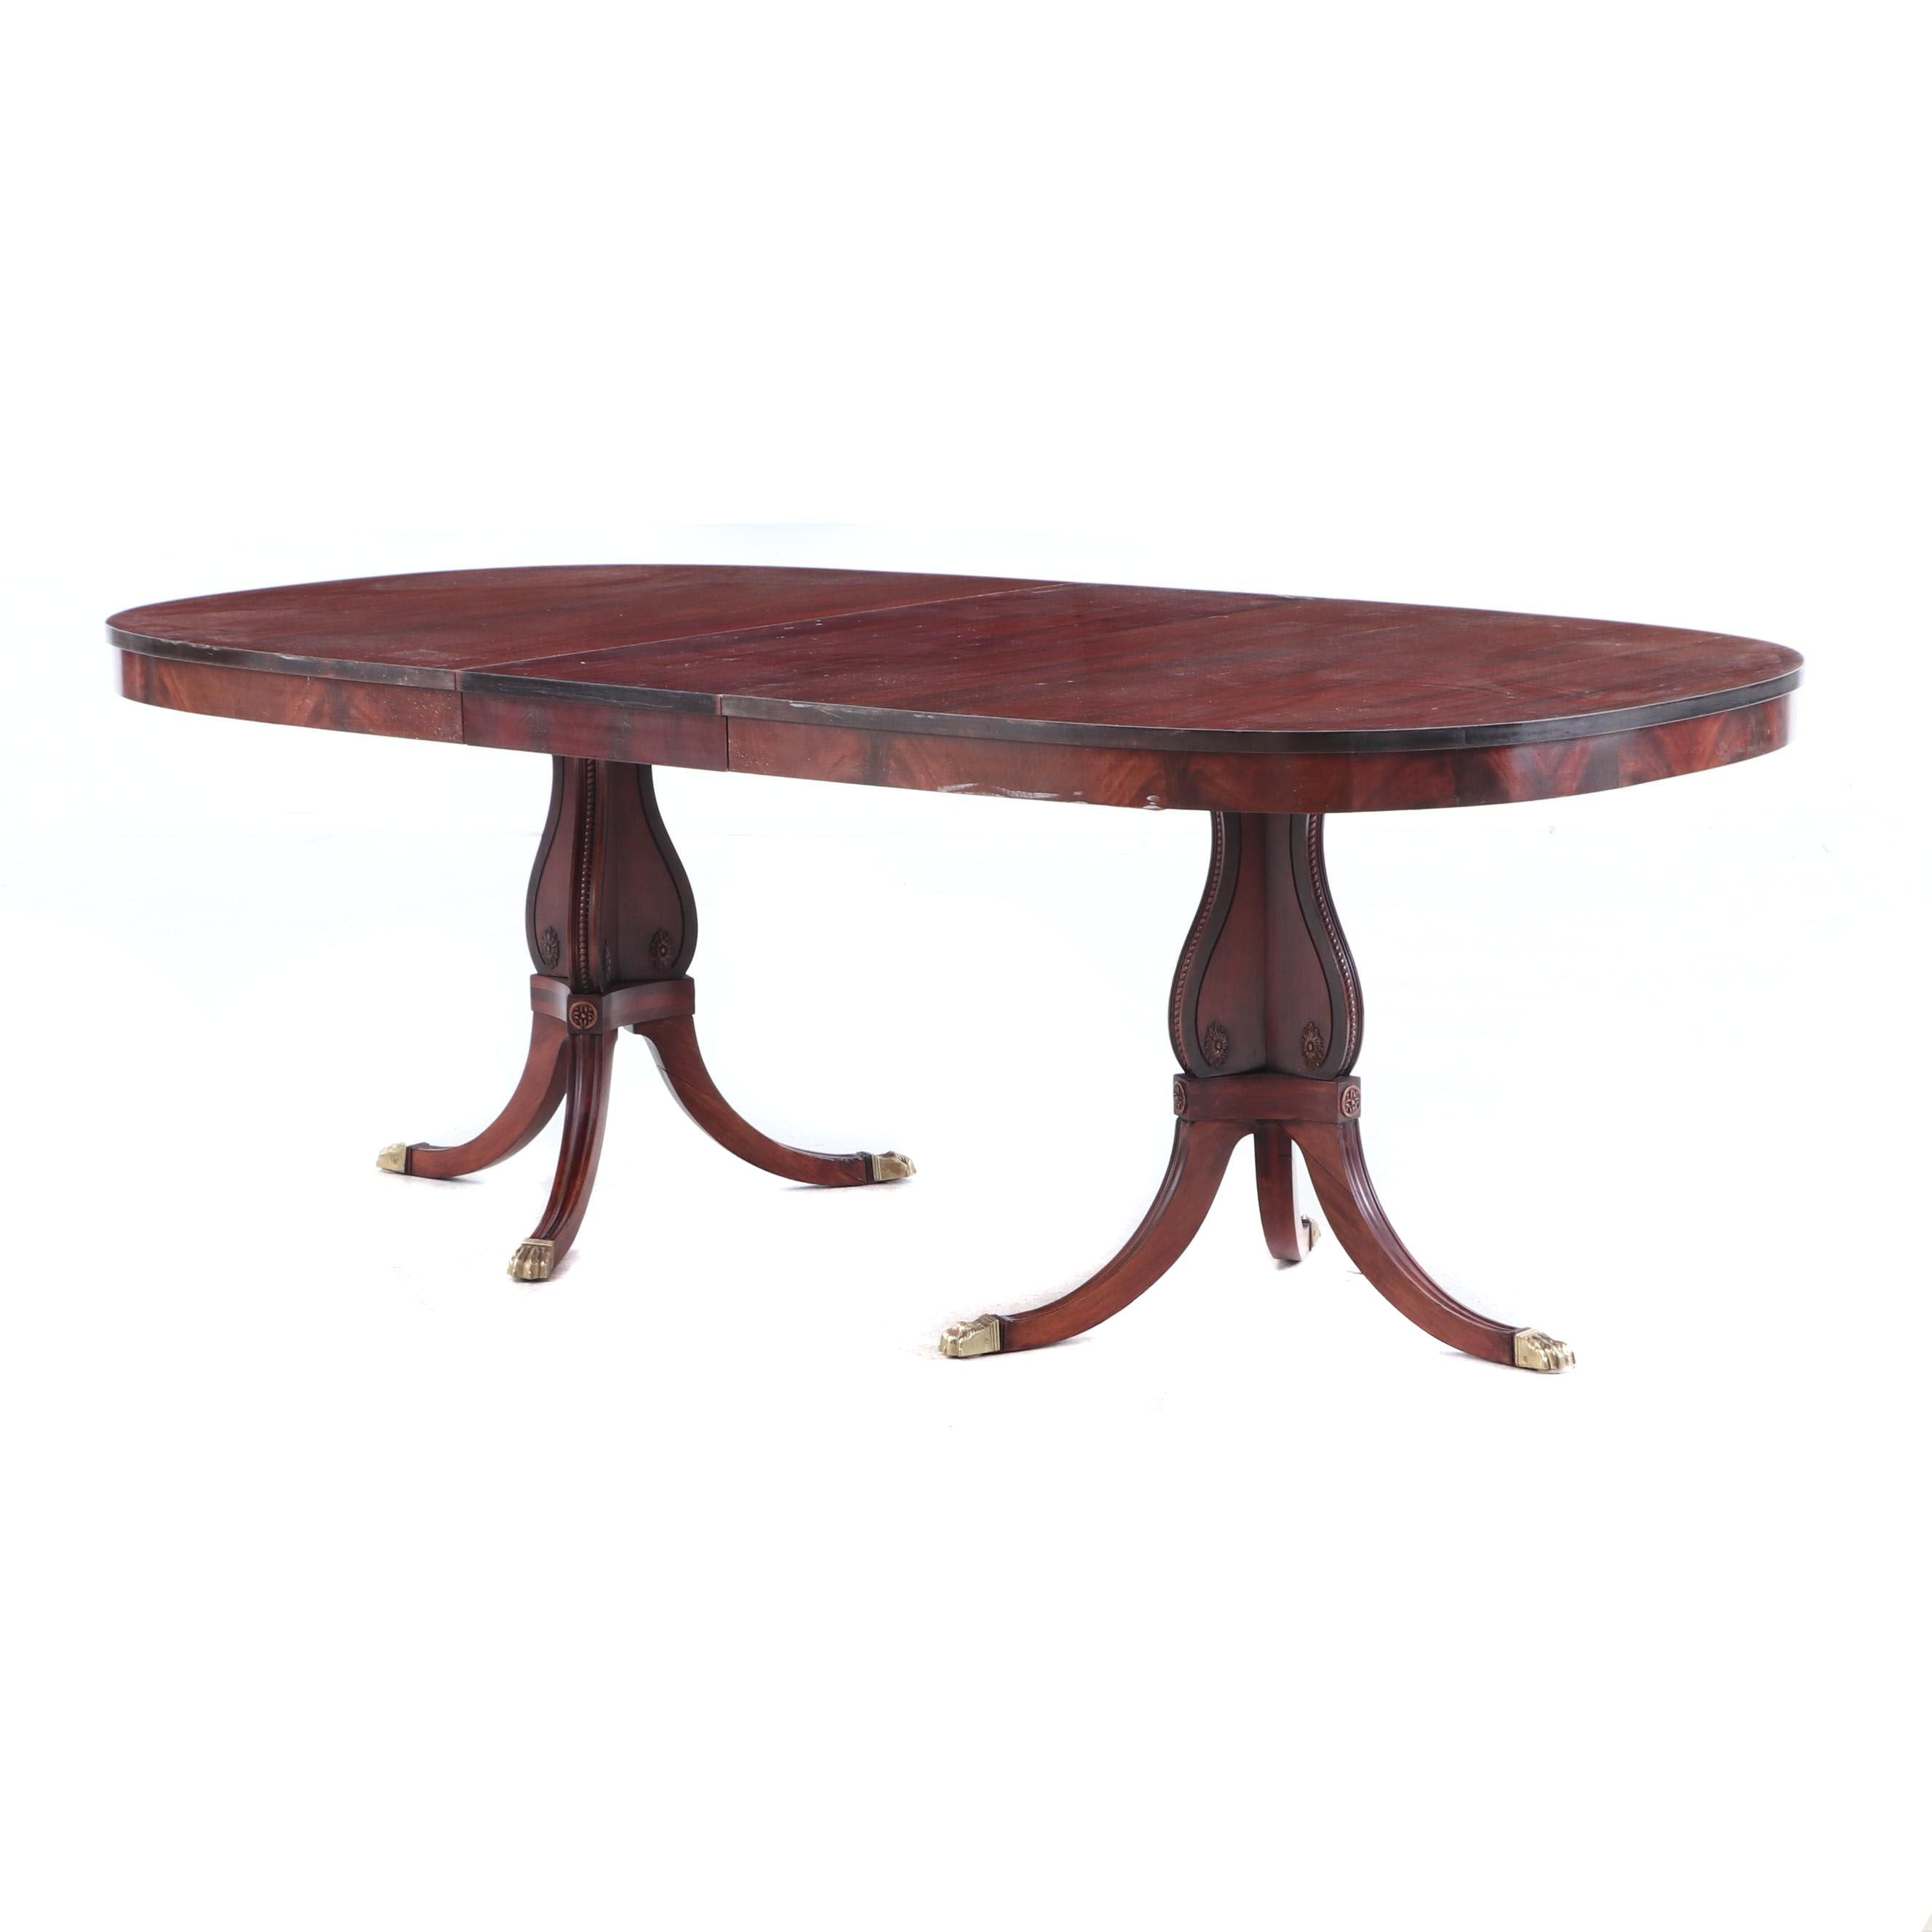 Mahogany Duncan Phyfe Dinning Table with One Leaf